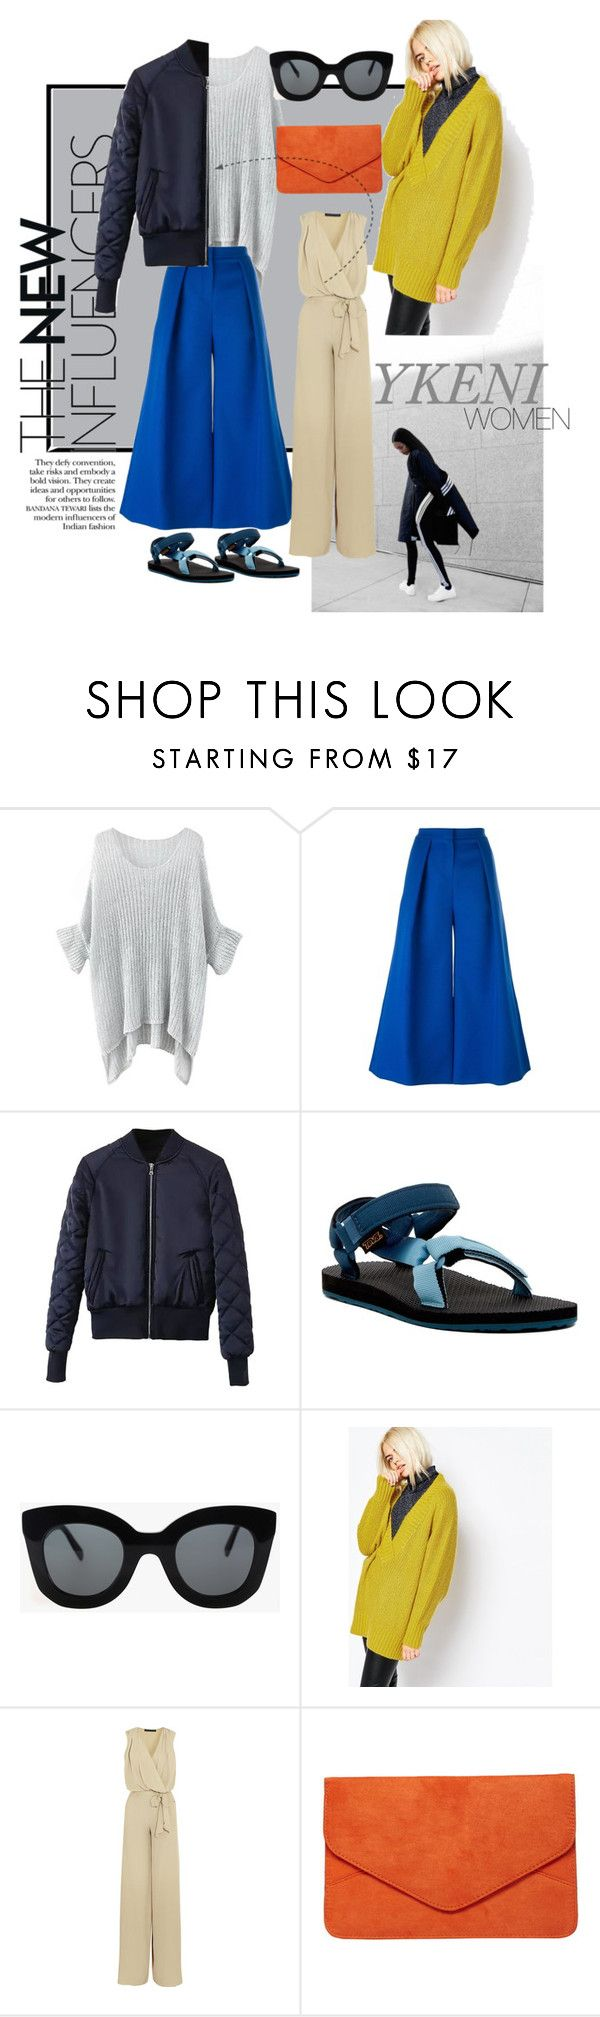 """60secondstyle"" by izrinizelan on Polyvore featuring Roksanda, Teva, CÉLINE, Monki, Maria Grachvogel, Dorothy Perkins, women's clothing, women, female and woman"